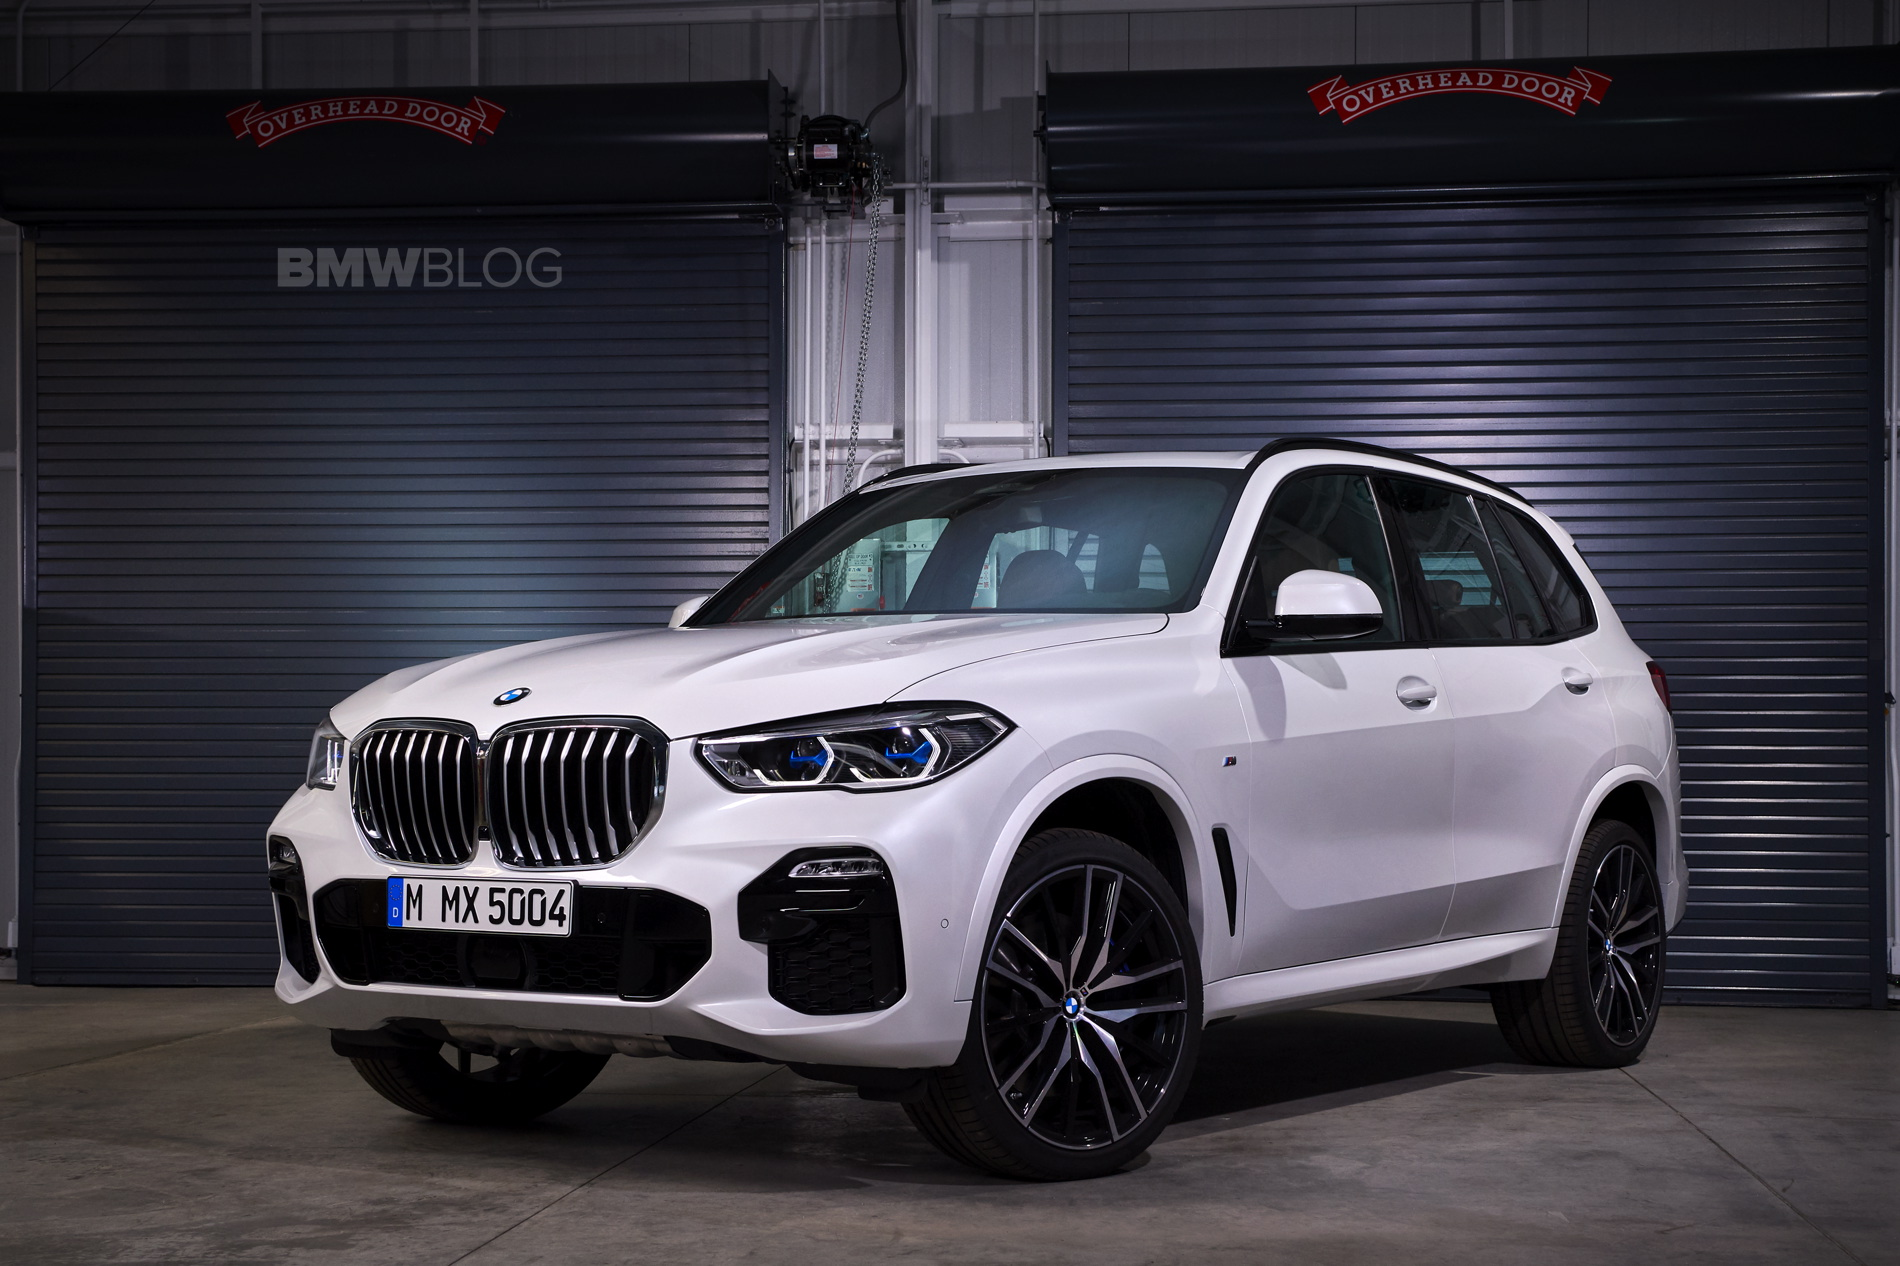 New BMW X5 real life images 01